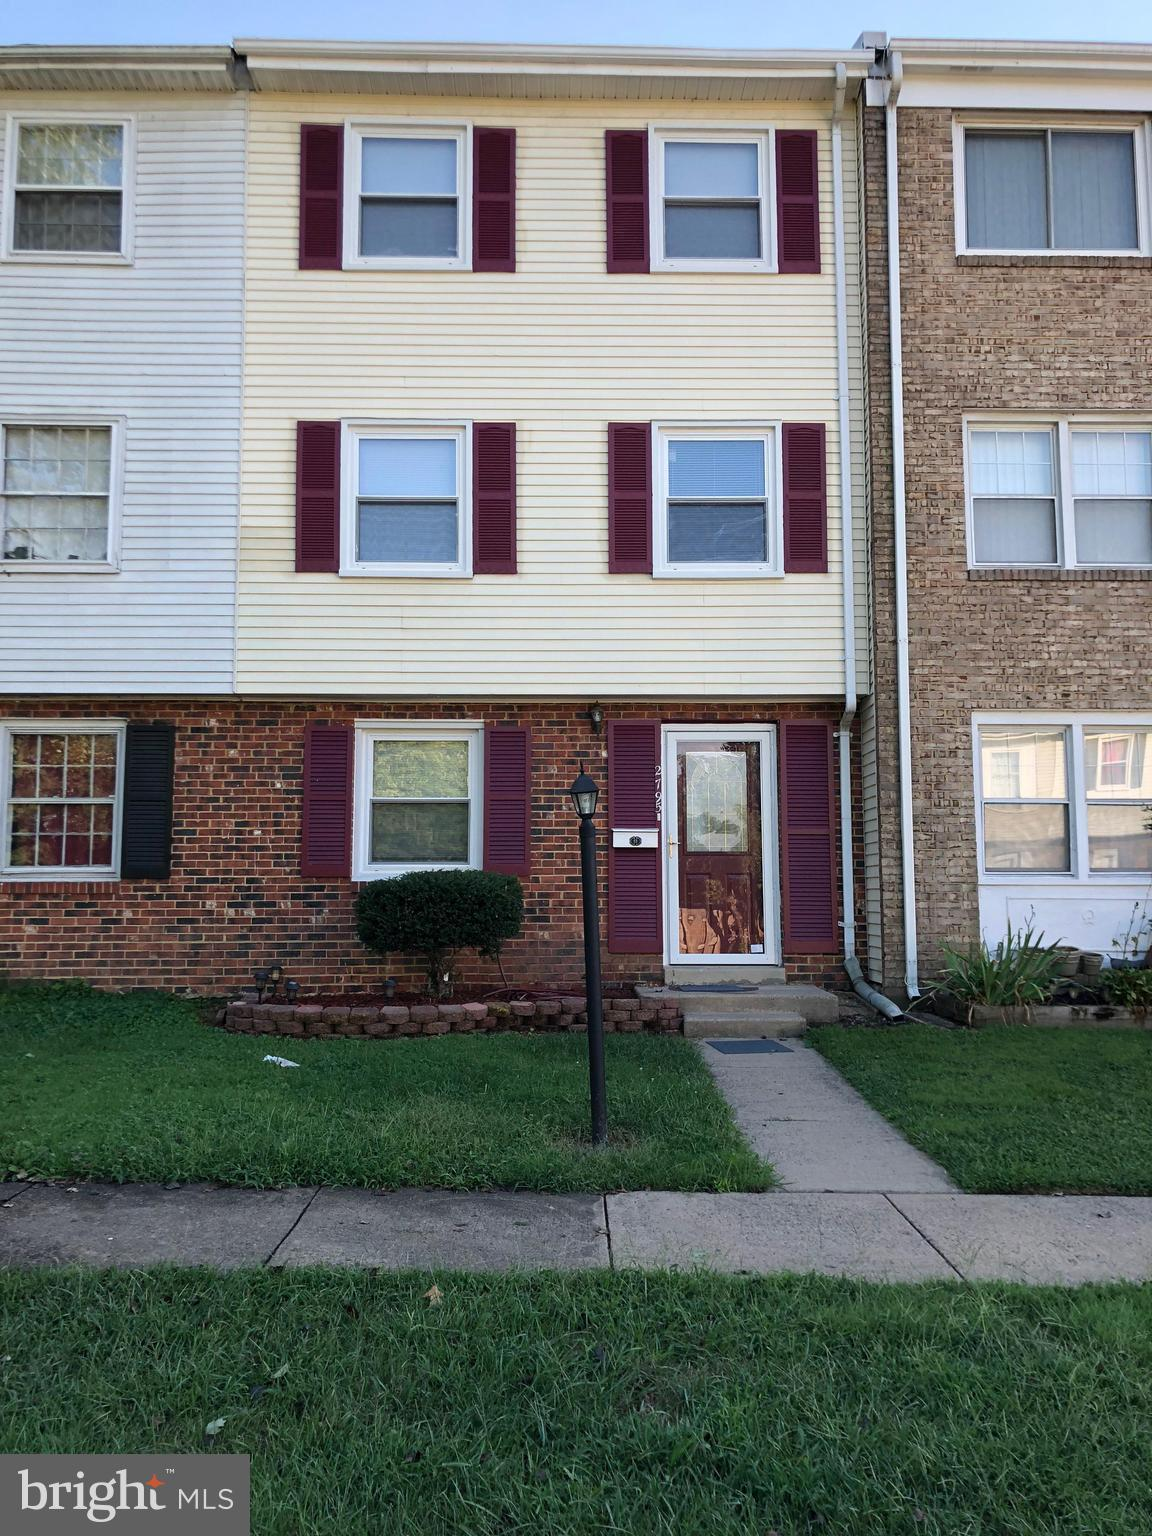 Spacious townhome just minutes from I-95 and Quantico, 4 bedrooms, 2 baths, 3 finished levels. New kitchen cabinets, countertops, bathroom vanities and flooring.  Washer/dryer, ceiling fans, fenced backyard with deck, rec room in basement.  Vacant and move in ready. No sign on property. Owner/Agent.